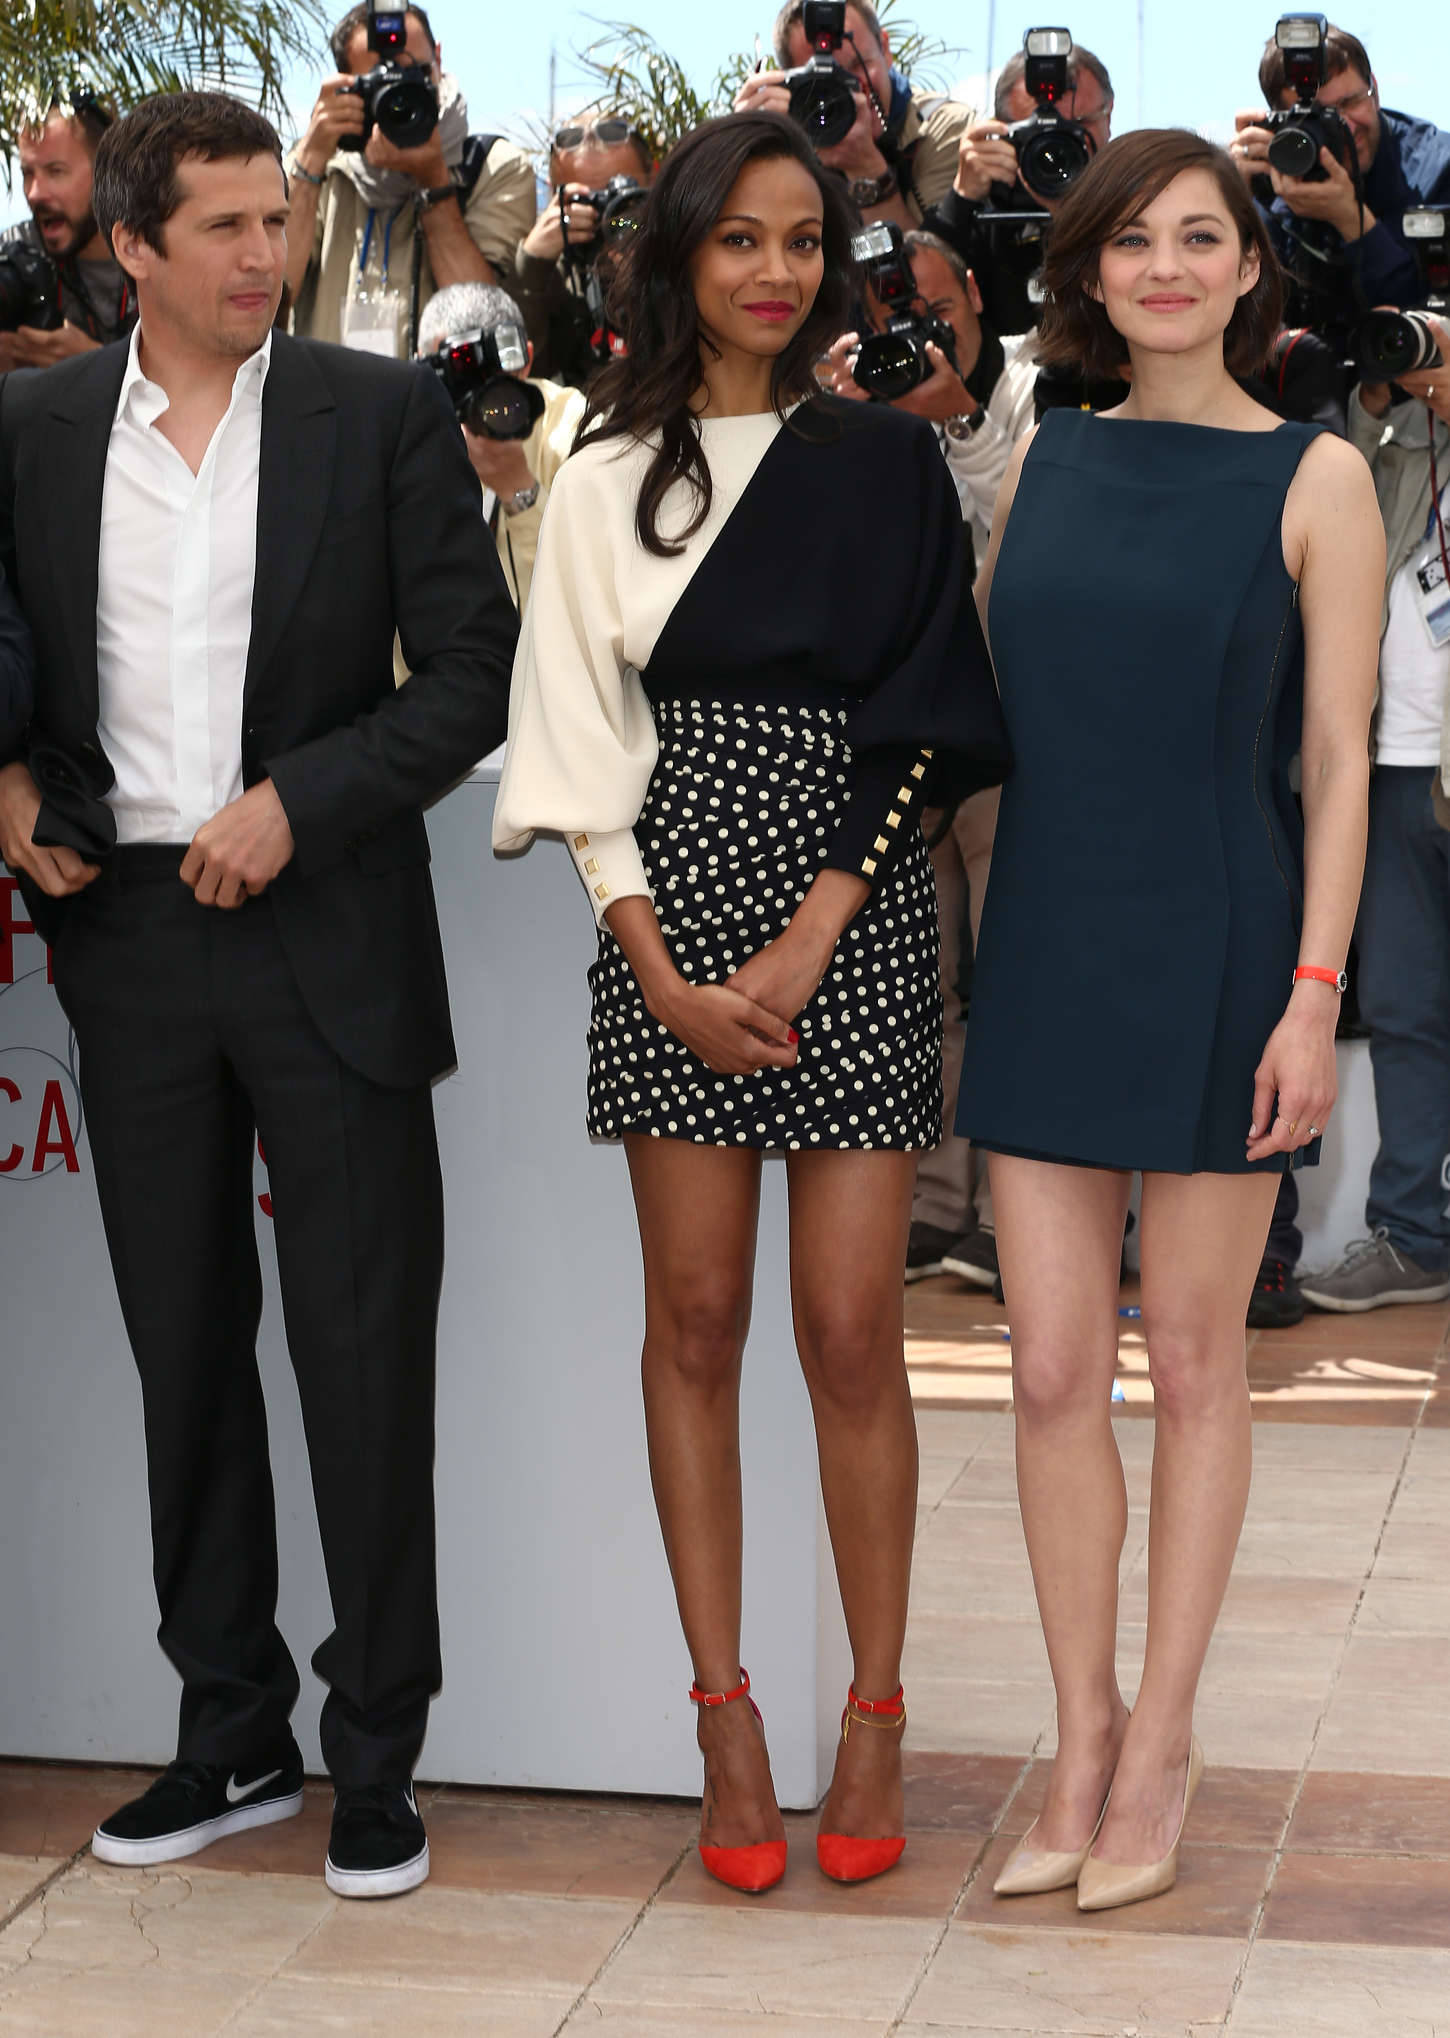 ¿Cuánto mide Marion Cotillard? - Real height Zoe-Saldana-and-Marion-Cotillard-at-Blood-Ties-Photocall-at-the-66th-Cannes-Film-Festival-16